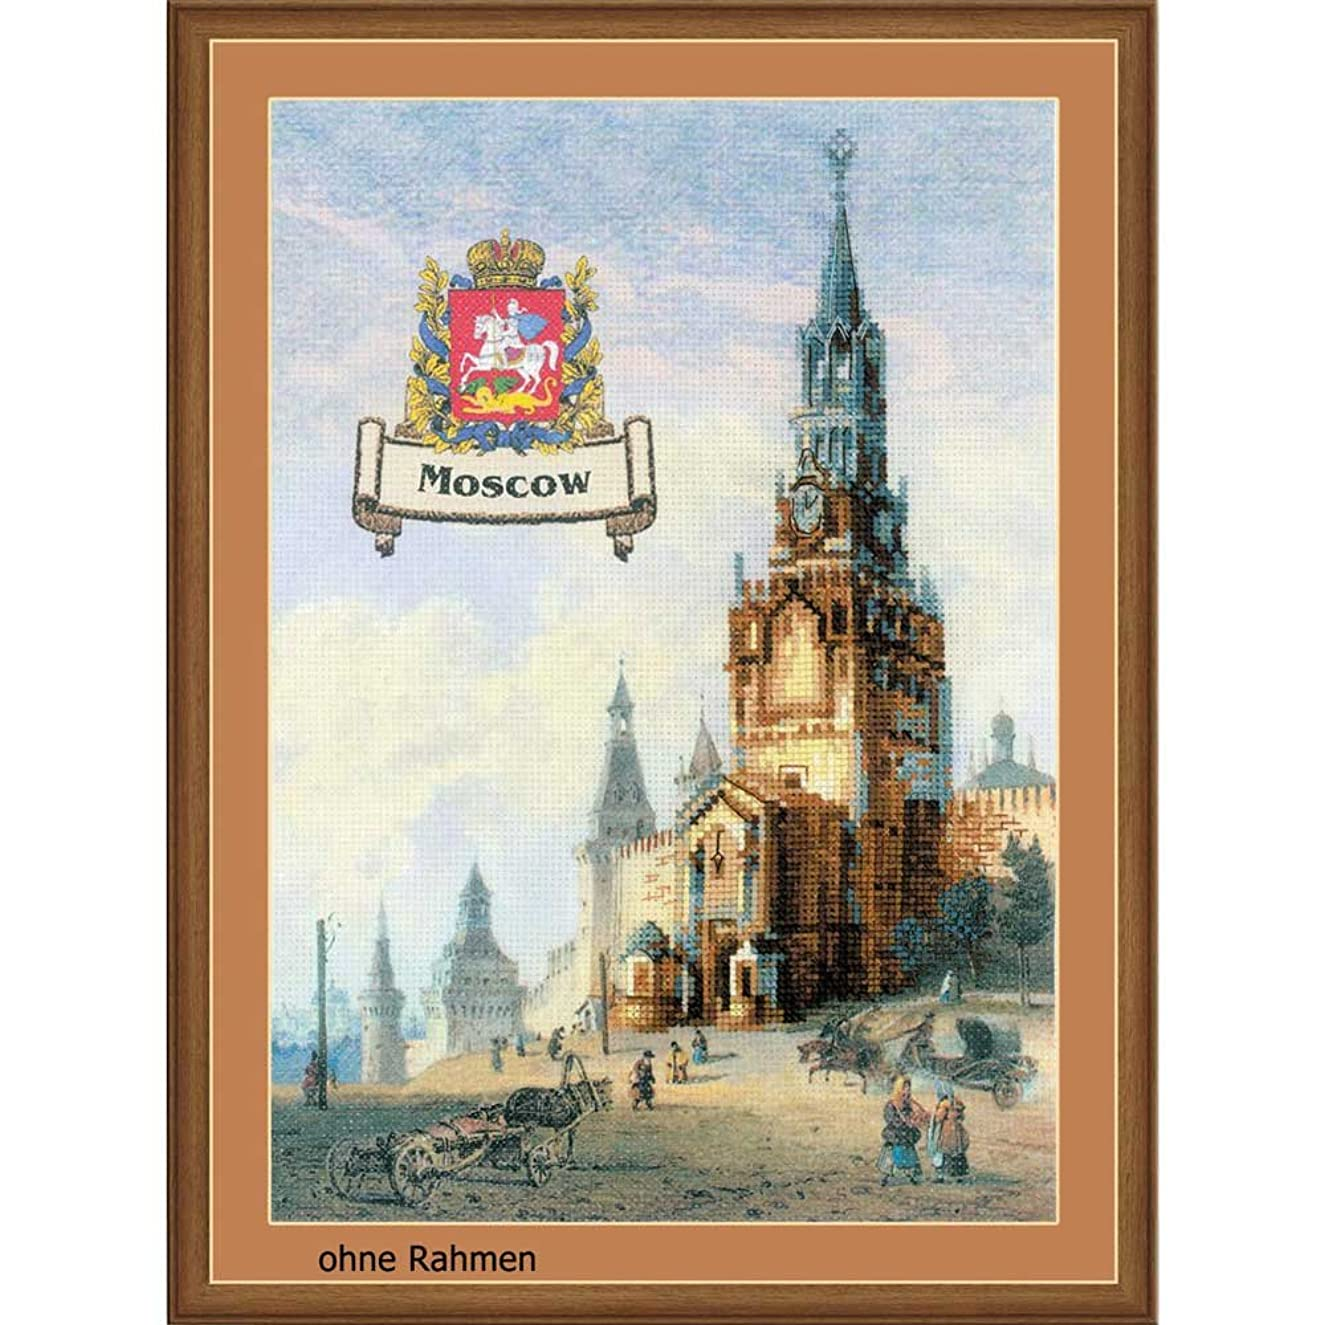 RIOLIS 0064 Cities of Russia - Moscow - Counted Cross Stitch Kit - 9